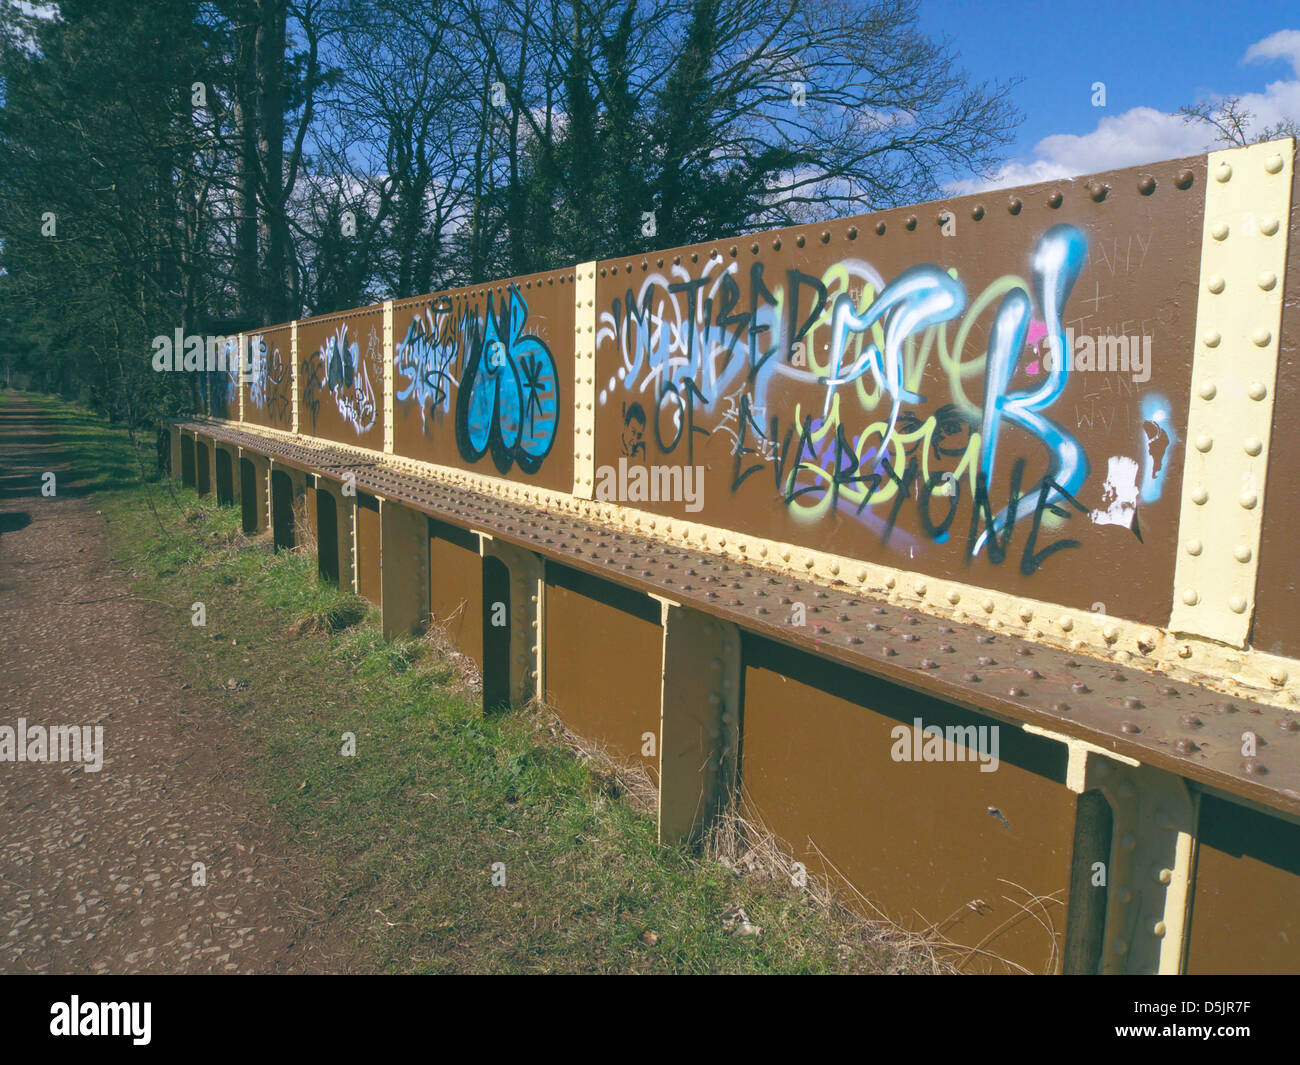 Graffiti On a Metal Bridge Along the South Staffordshire Railway Walk, Himley, Staffordshire, England, UK Stock Photo